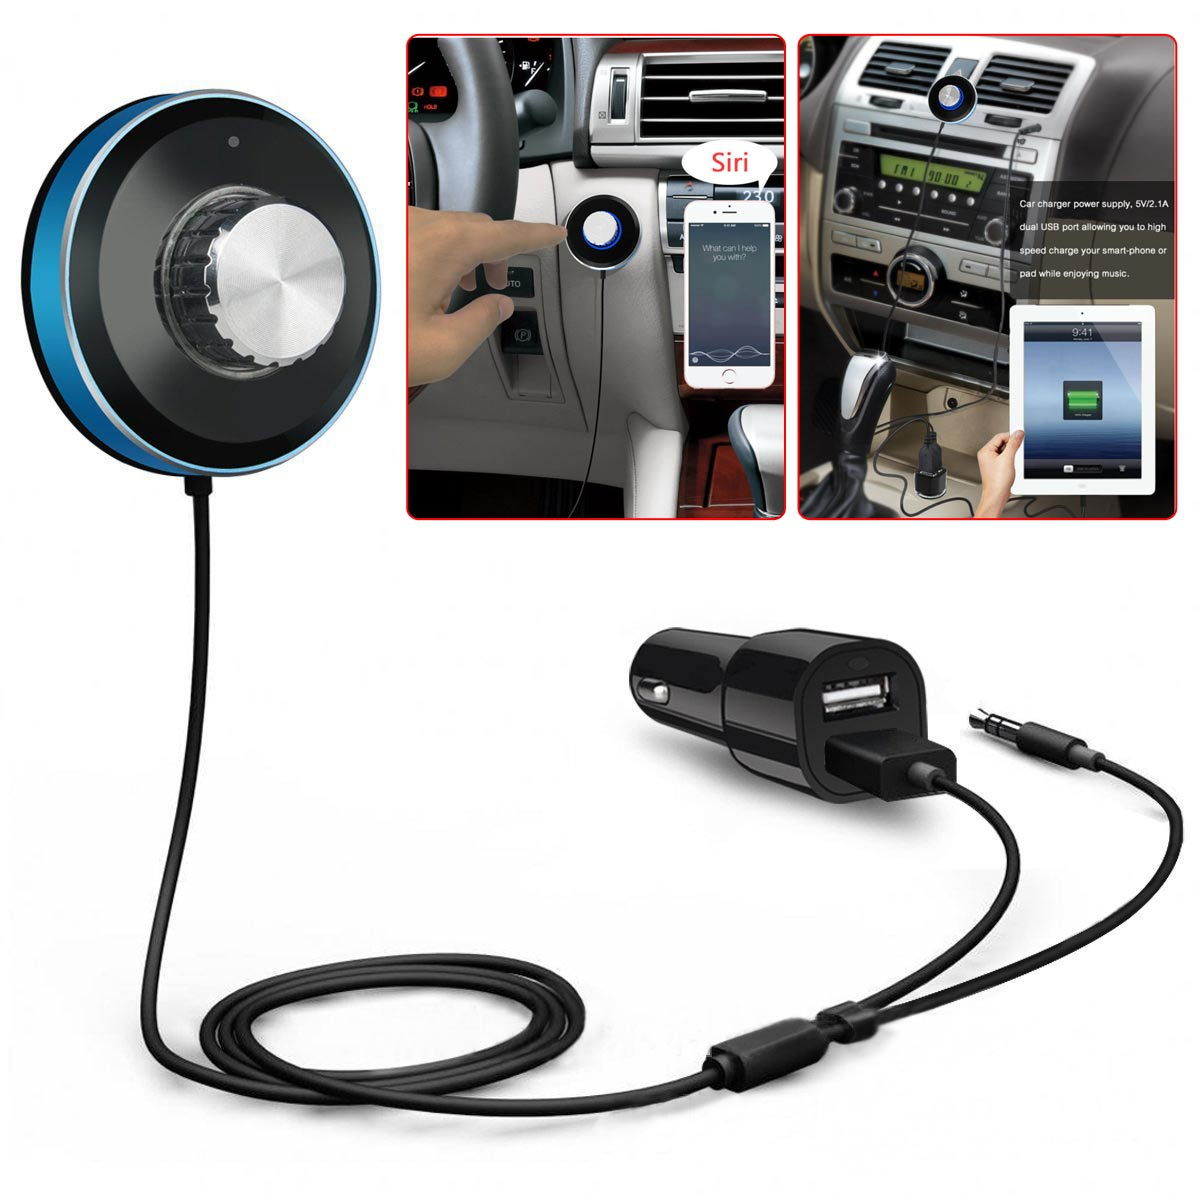 Bluetooth 4.0 Receiver 2-Port USB Car Charger Magnetic Base Built-in Mic